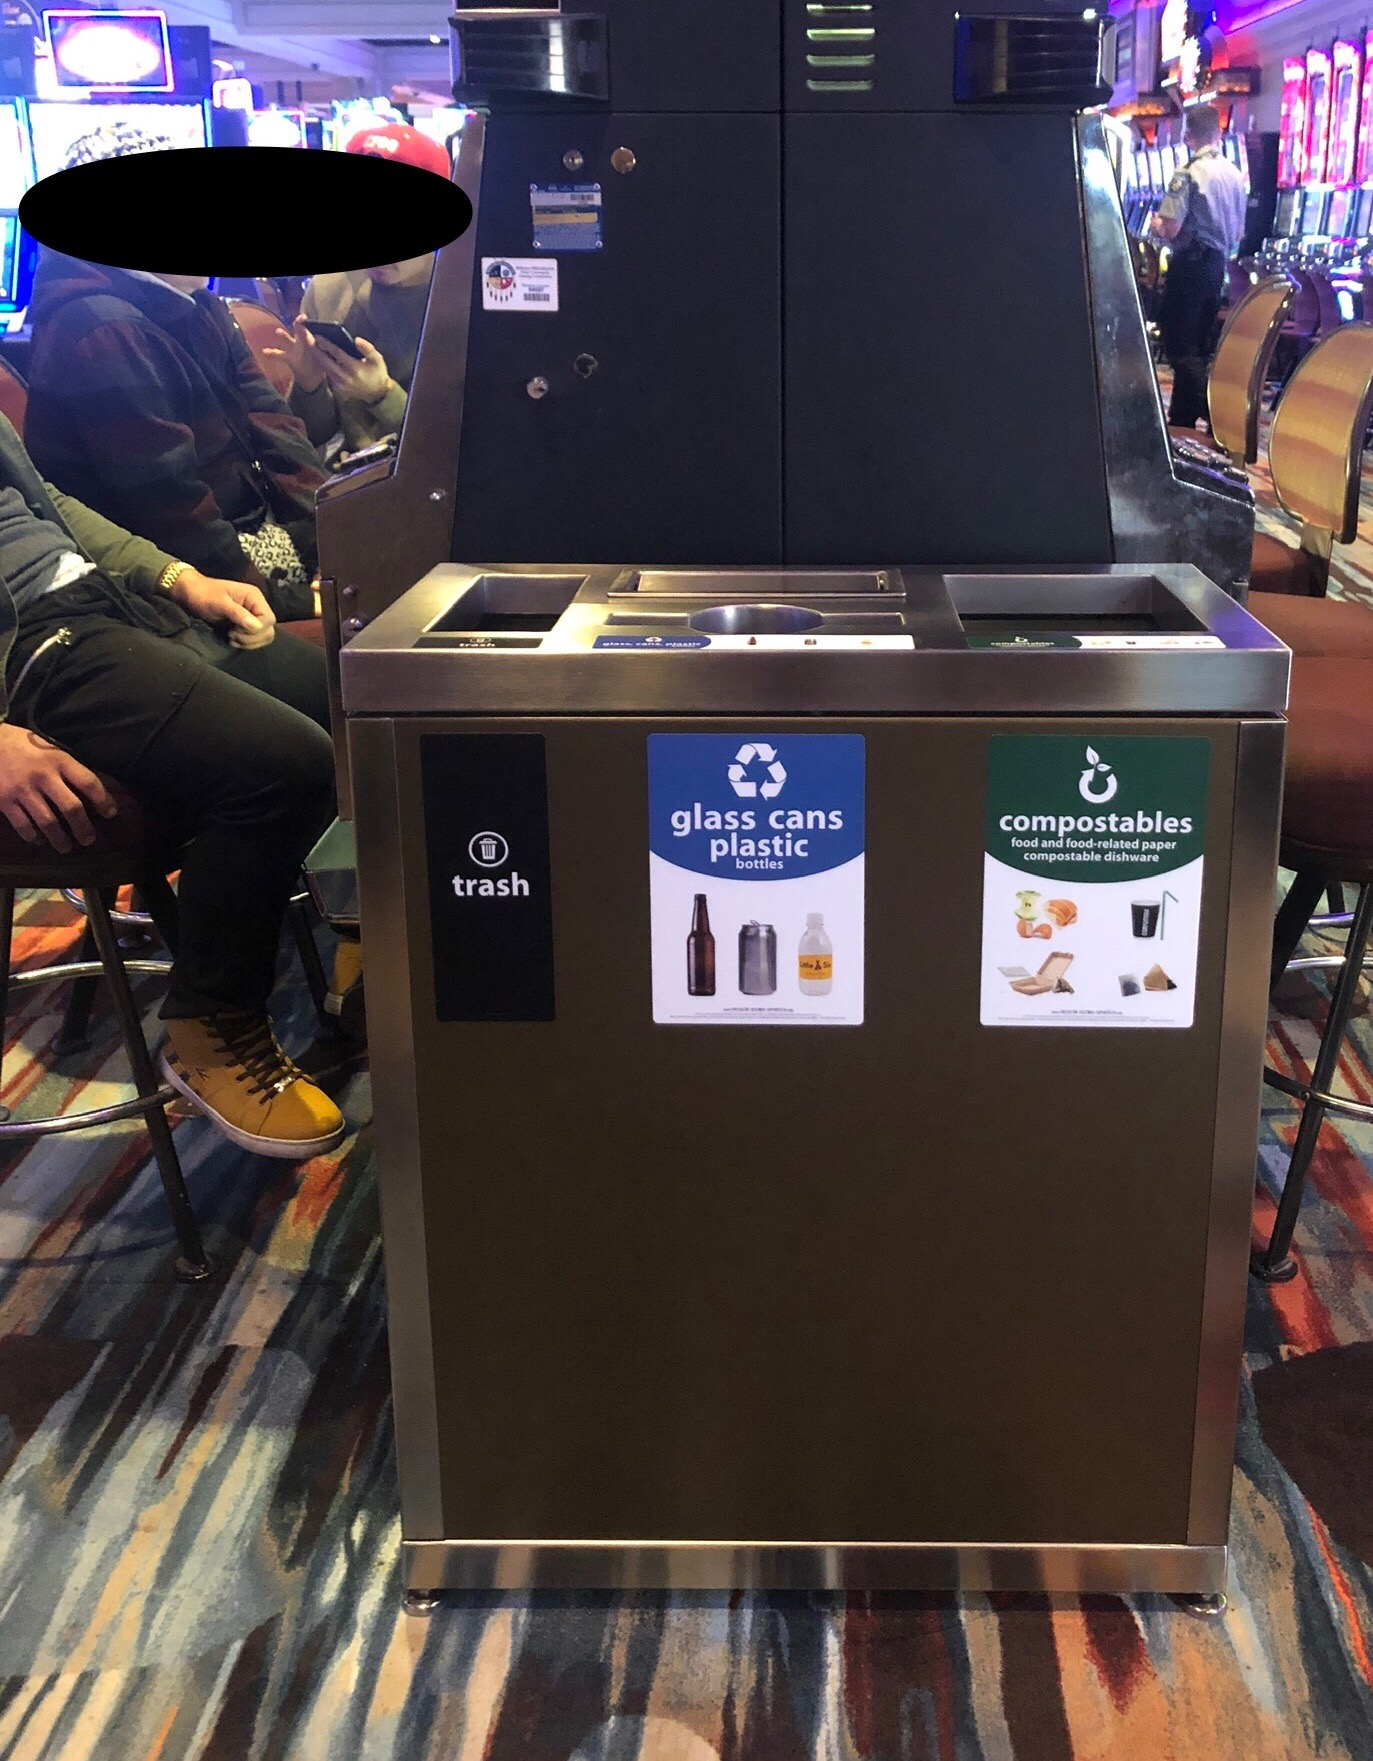 New waste collection bins at Little Six Casino, featuring Recycle Across America standardized signs.